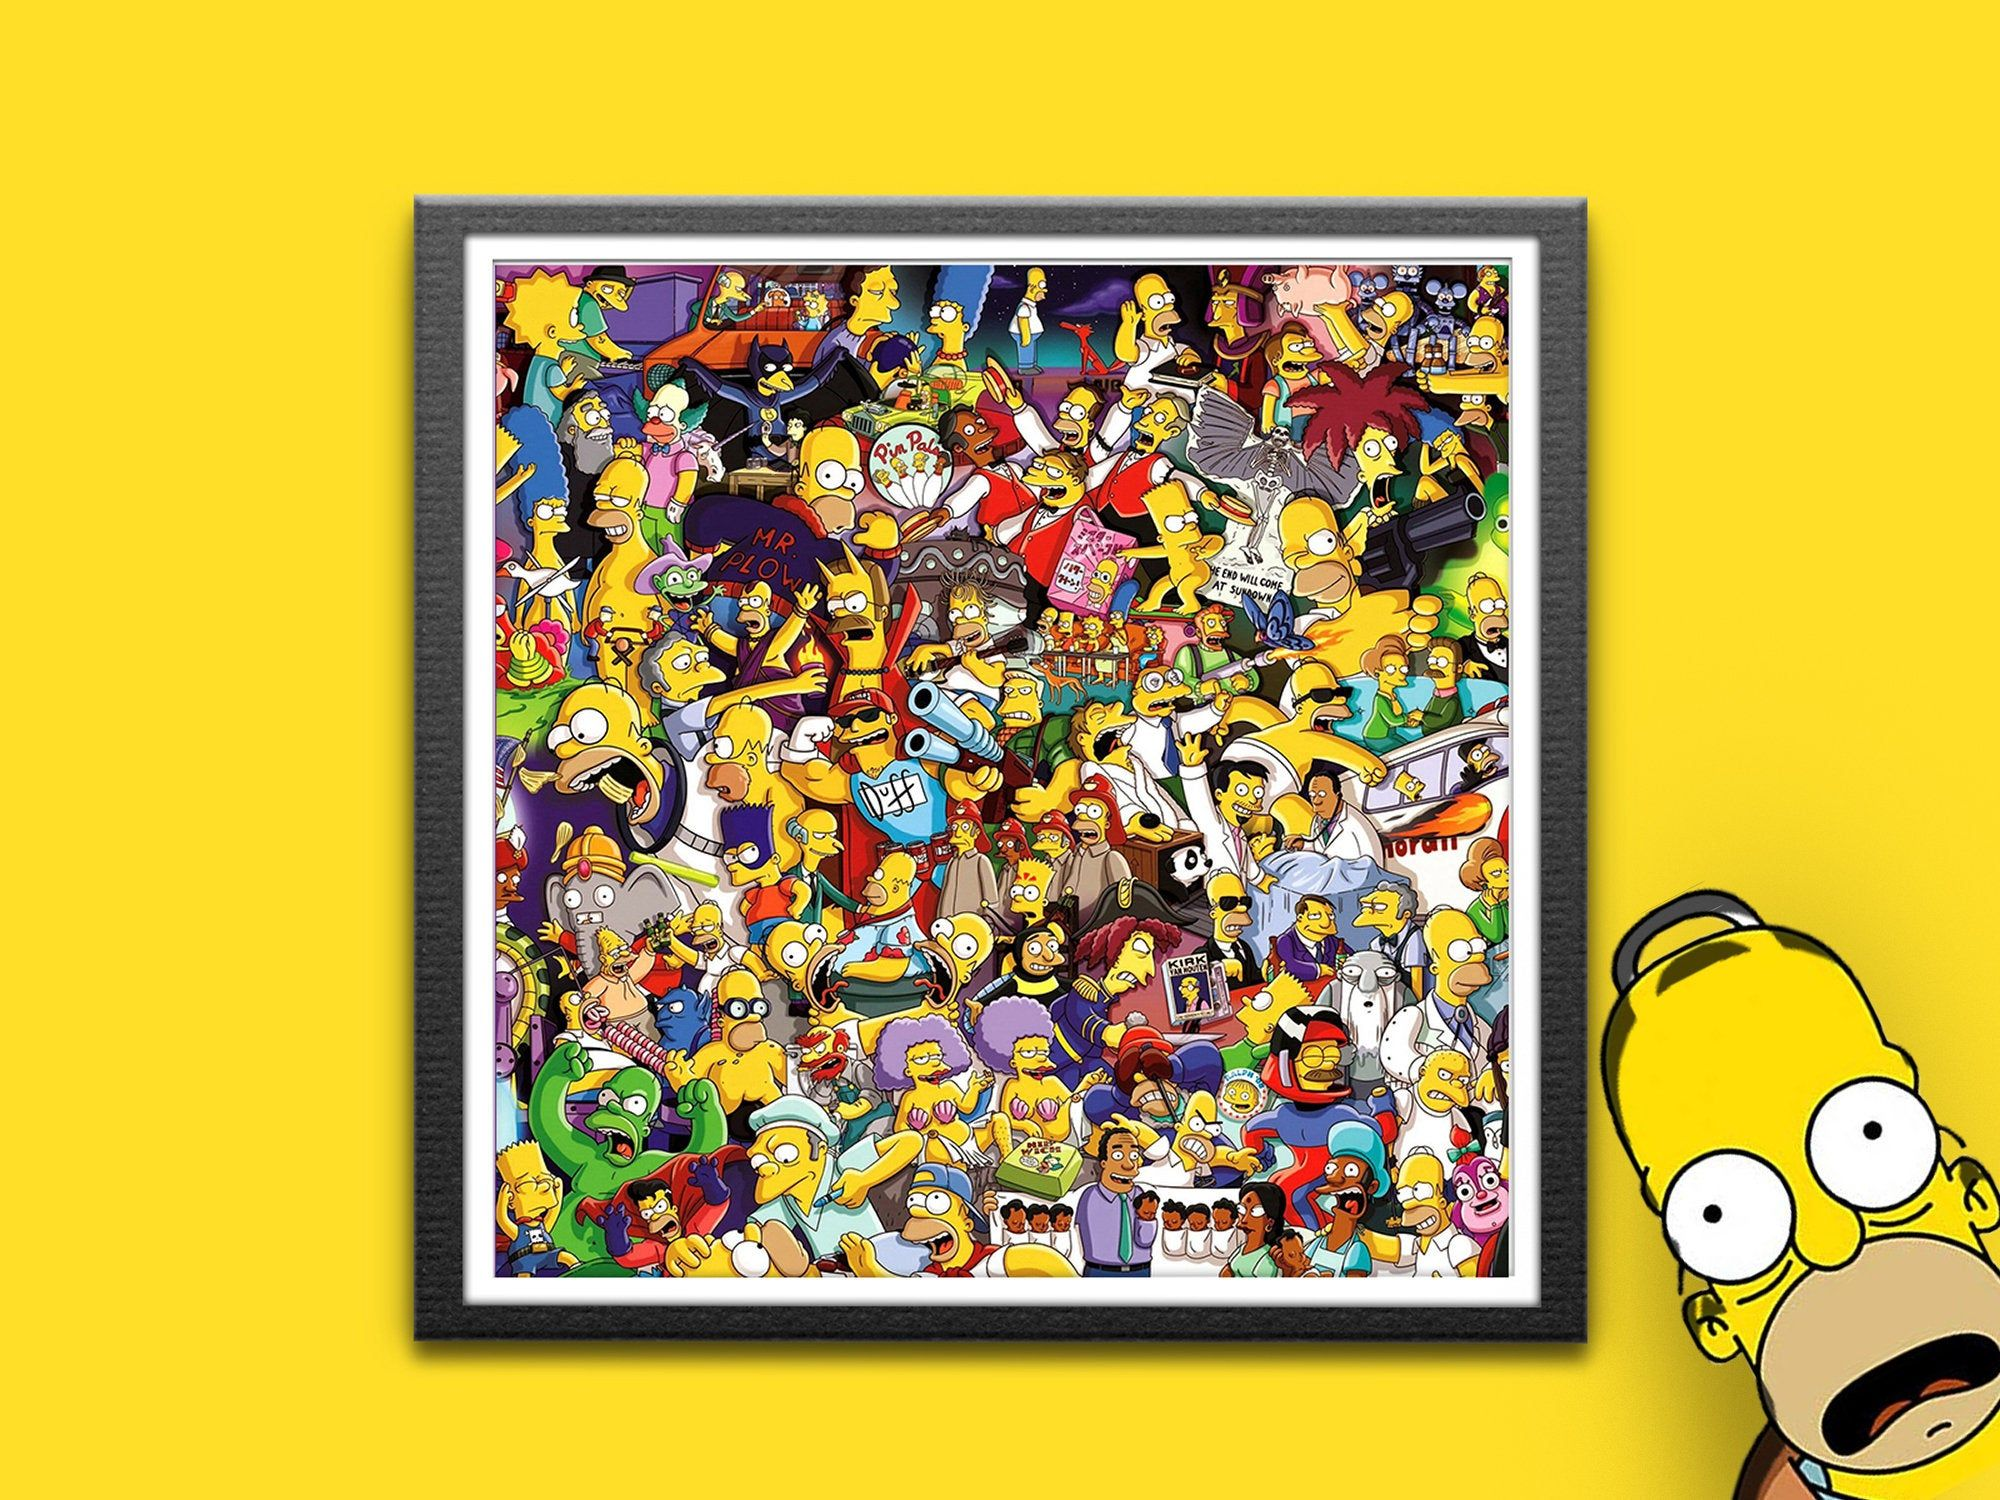 Homer Simpsons Art Homer Film Poster Simpsons Print Homer Simpson Simpsons Wall Art Bart Simpson Geek Gift D Oh In 2020 Simpsons Art Geek Poster Art